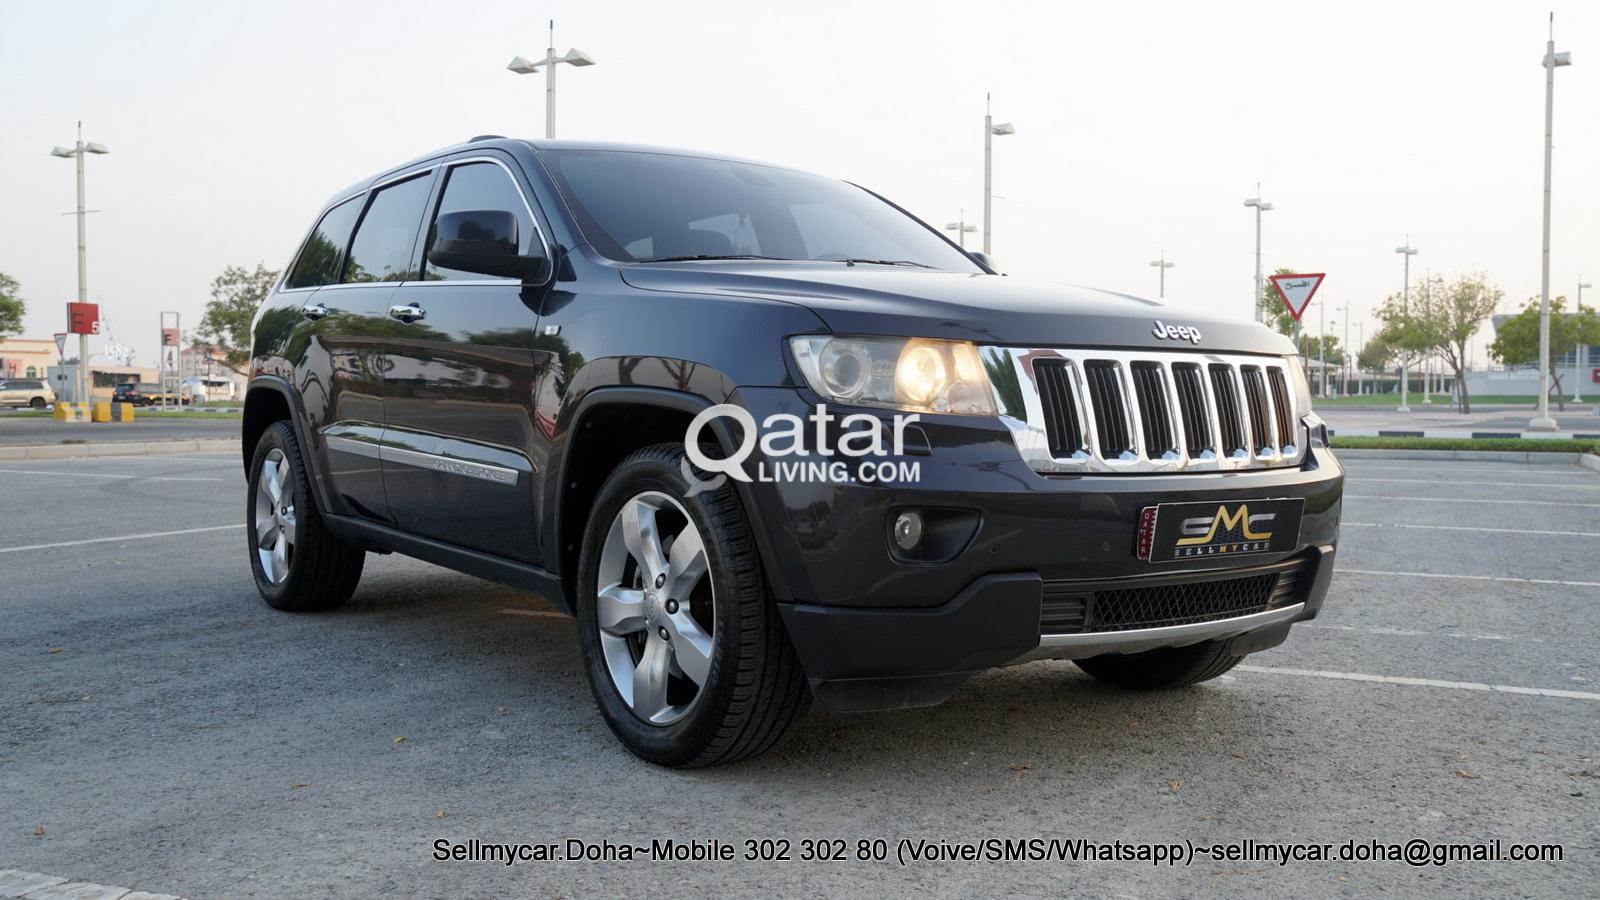 2012 Jeep Grand Cherokee Limited (Hemi 5.7) More P